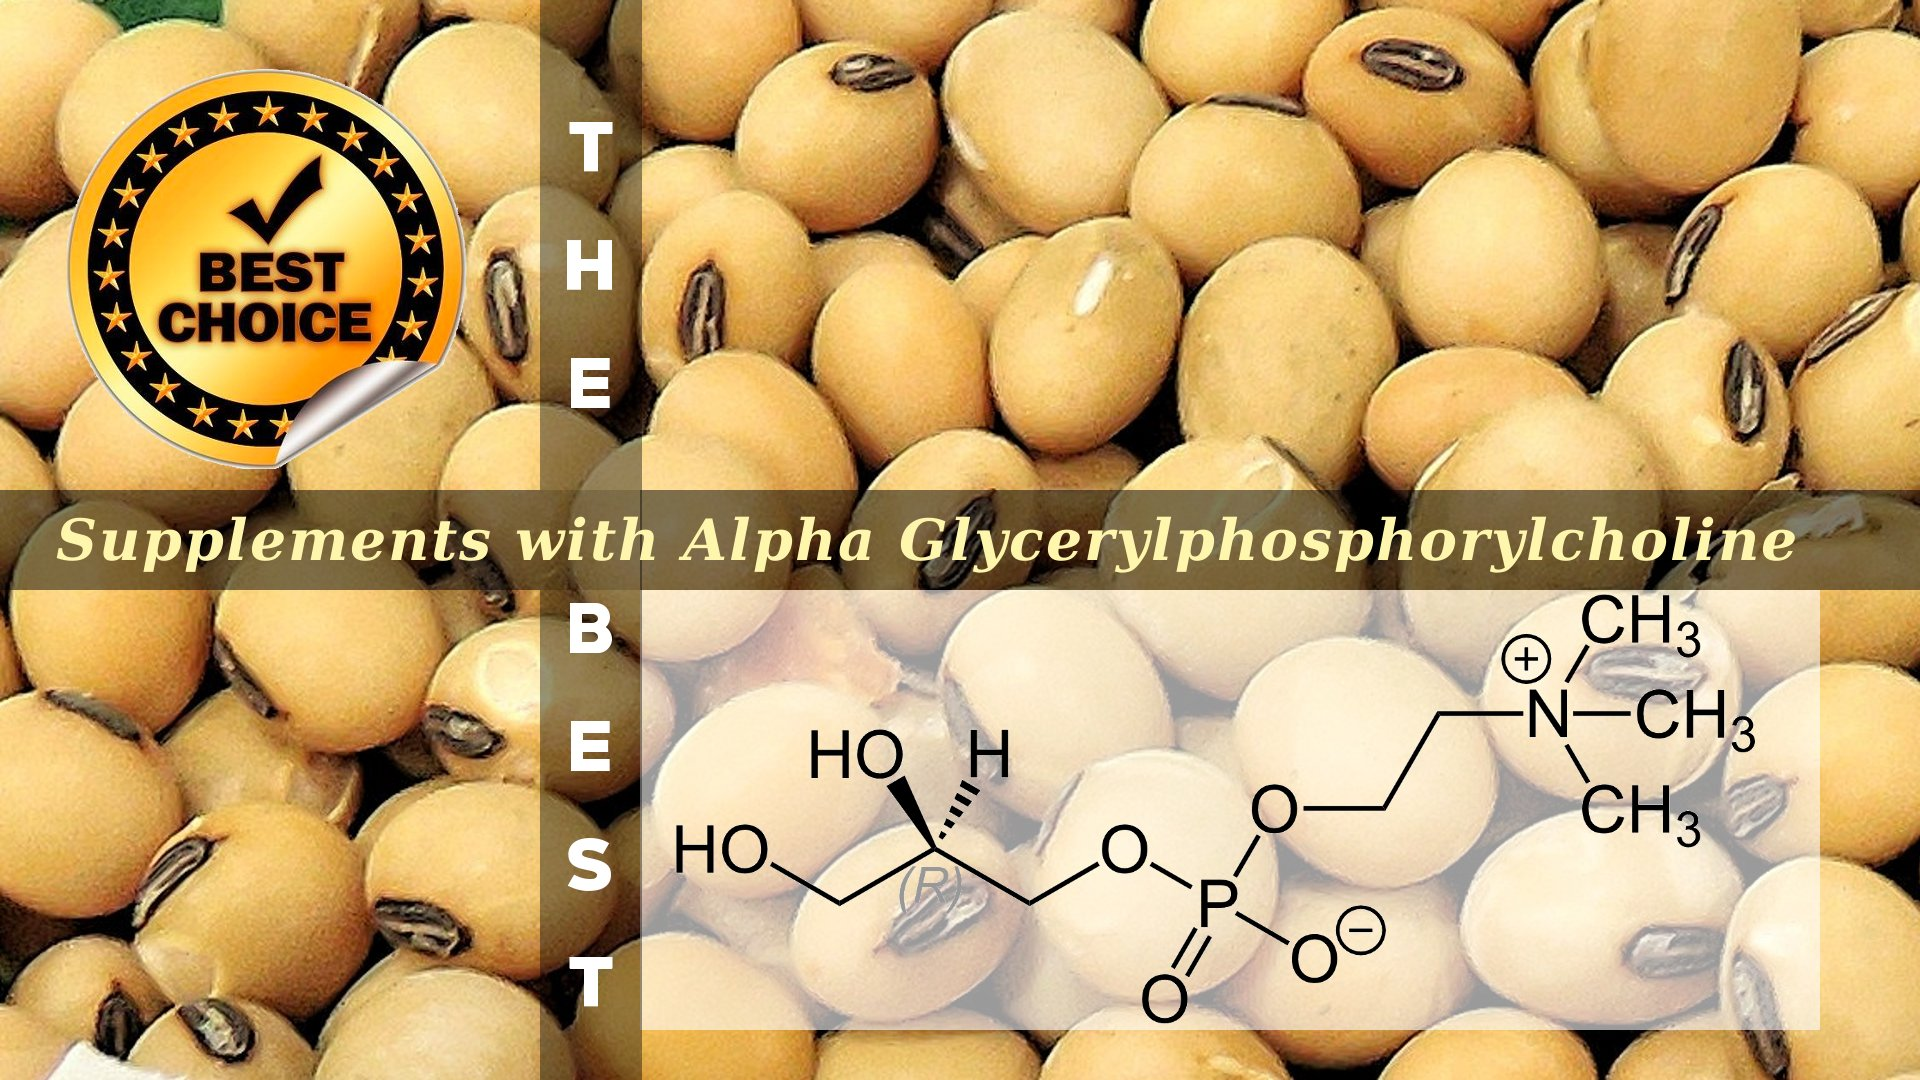 The Supplements with Alpha Glycerylphosphorylcholine